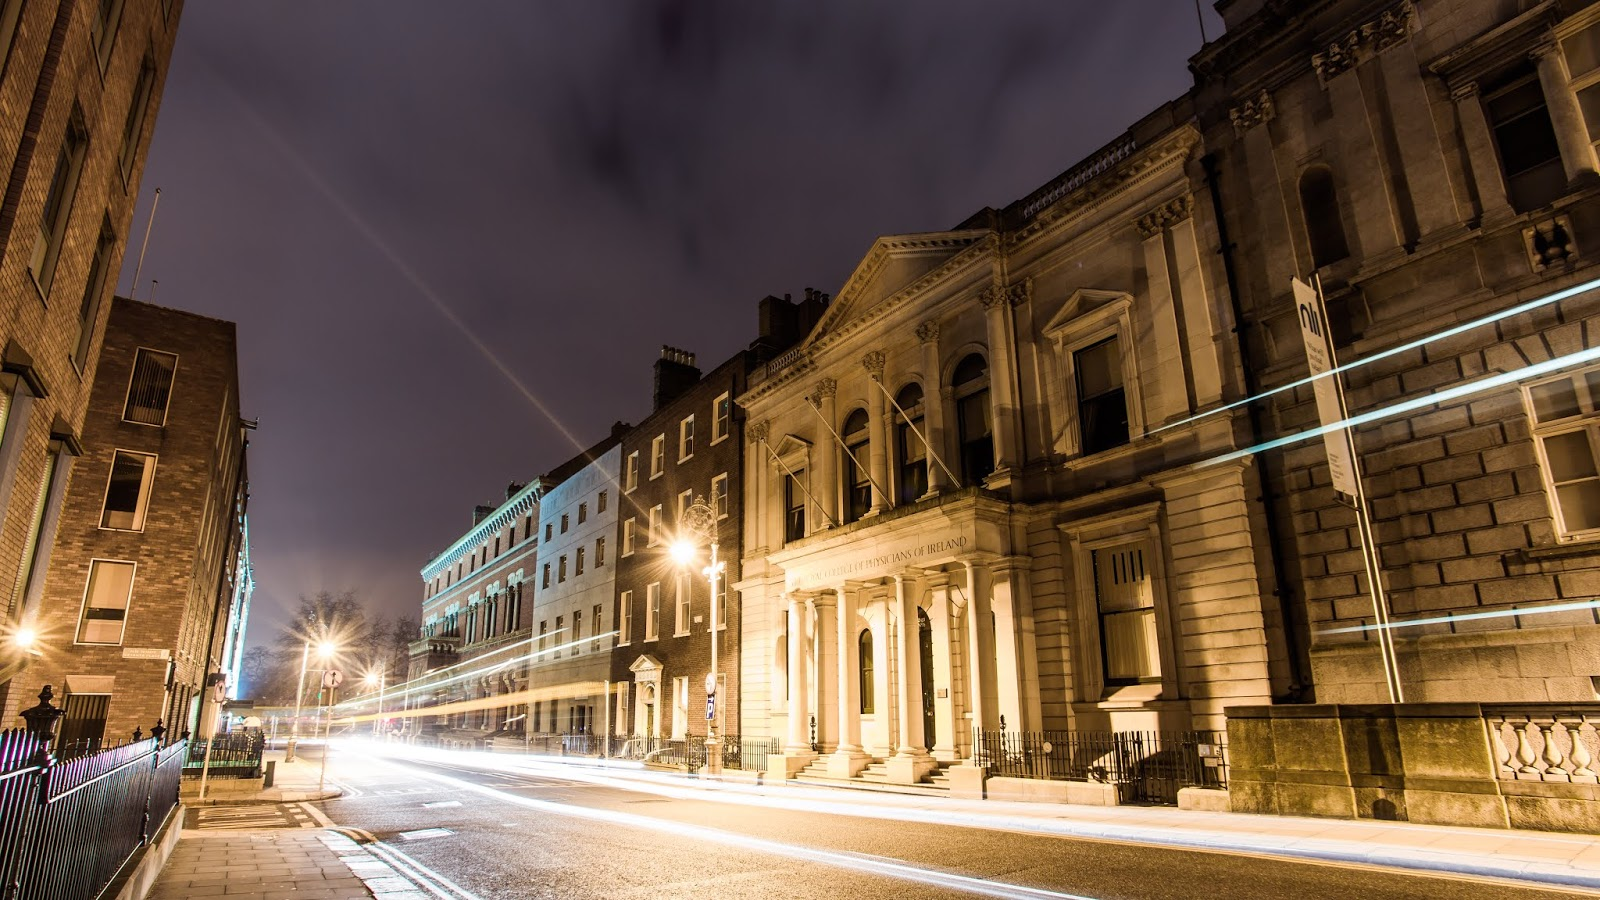 The Royal College Of Physicians Of Ireland Building At 6 Kildare Street Will Be Open To The Public From 5pm To 10pm On Friday 21 September